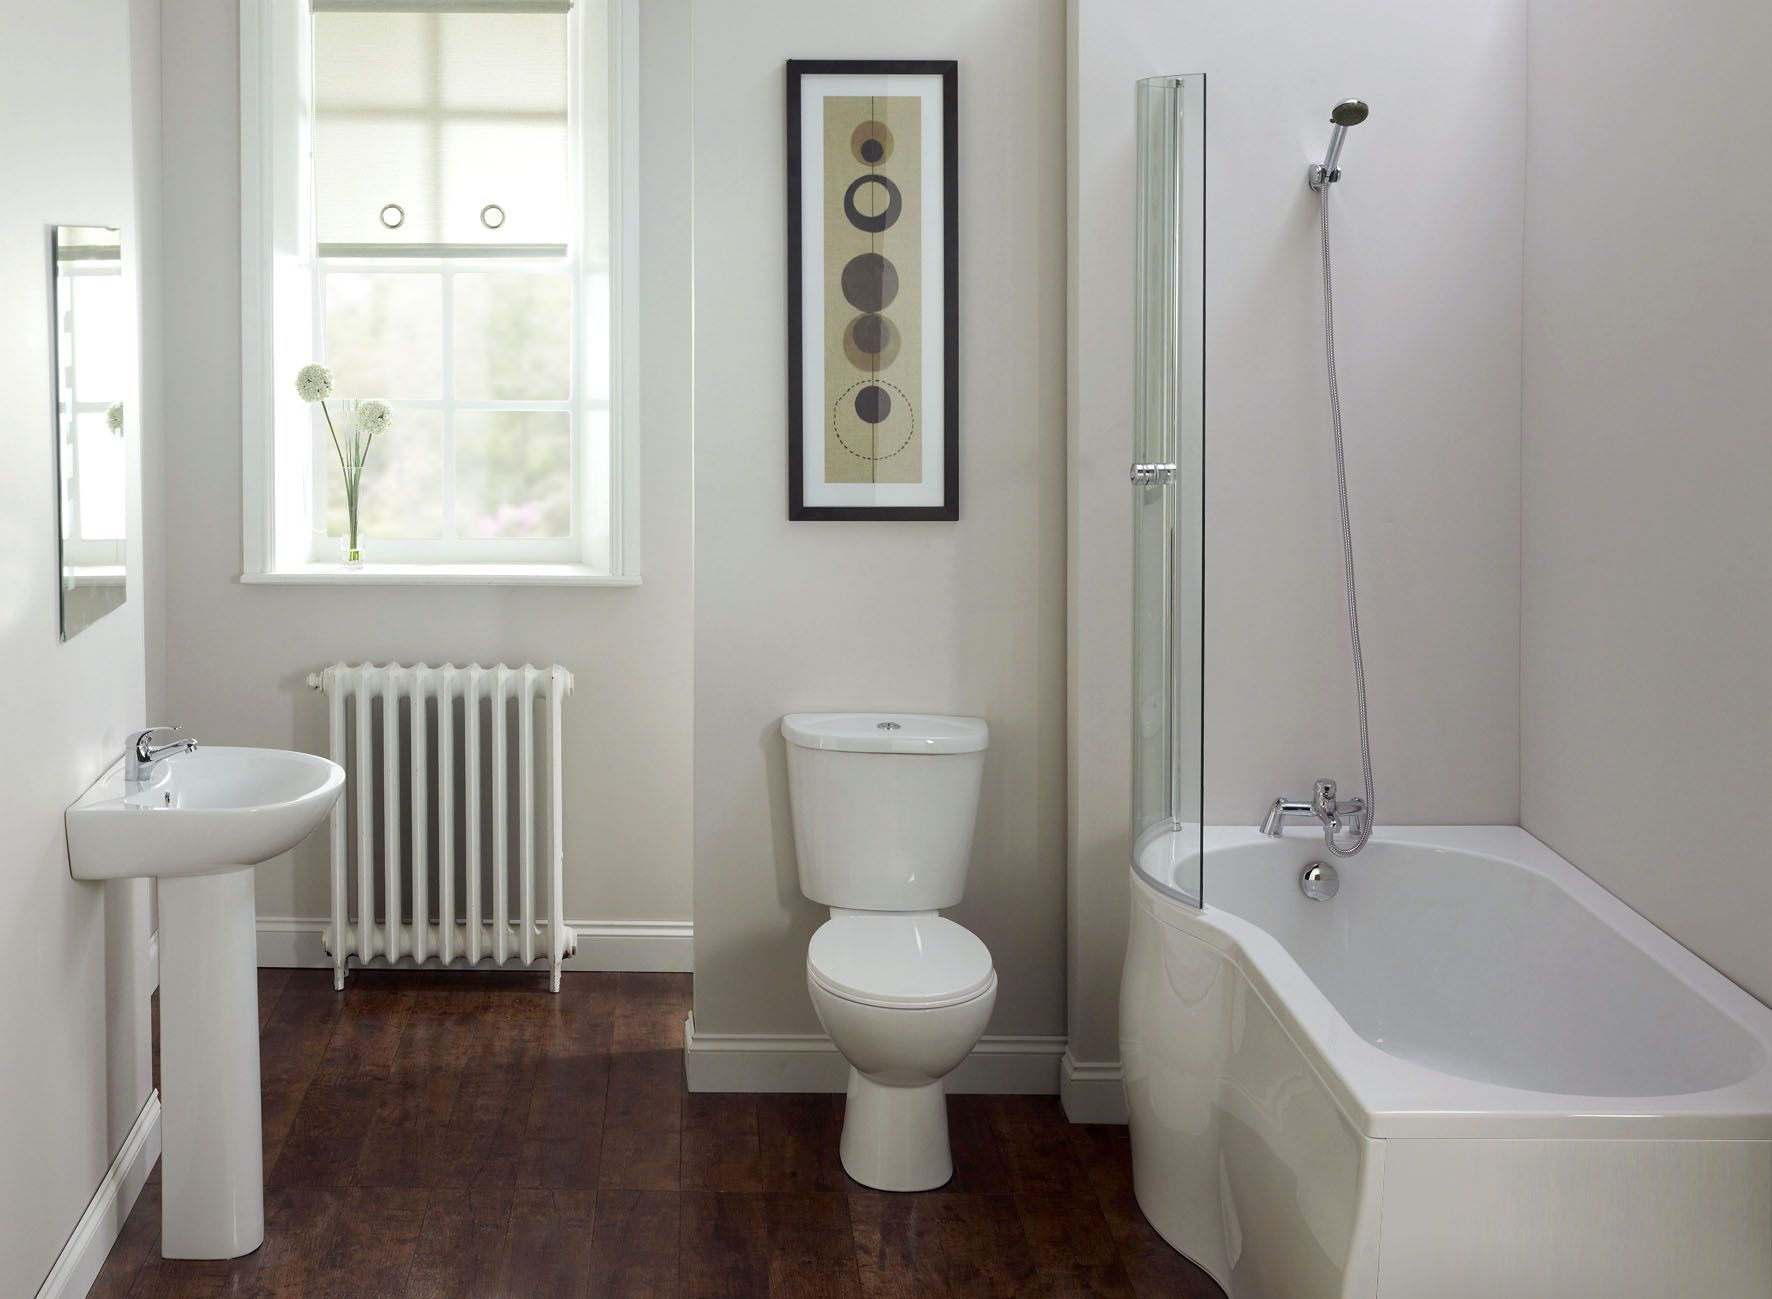 17 Best images about Bathroom Ideas on Pinterest   Small bathroom  remodeling  Traditional bathroom and Red curtains. 17 Best images about Bathroom Ideas on Pinterest   Small bathroom